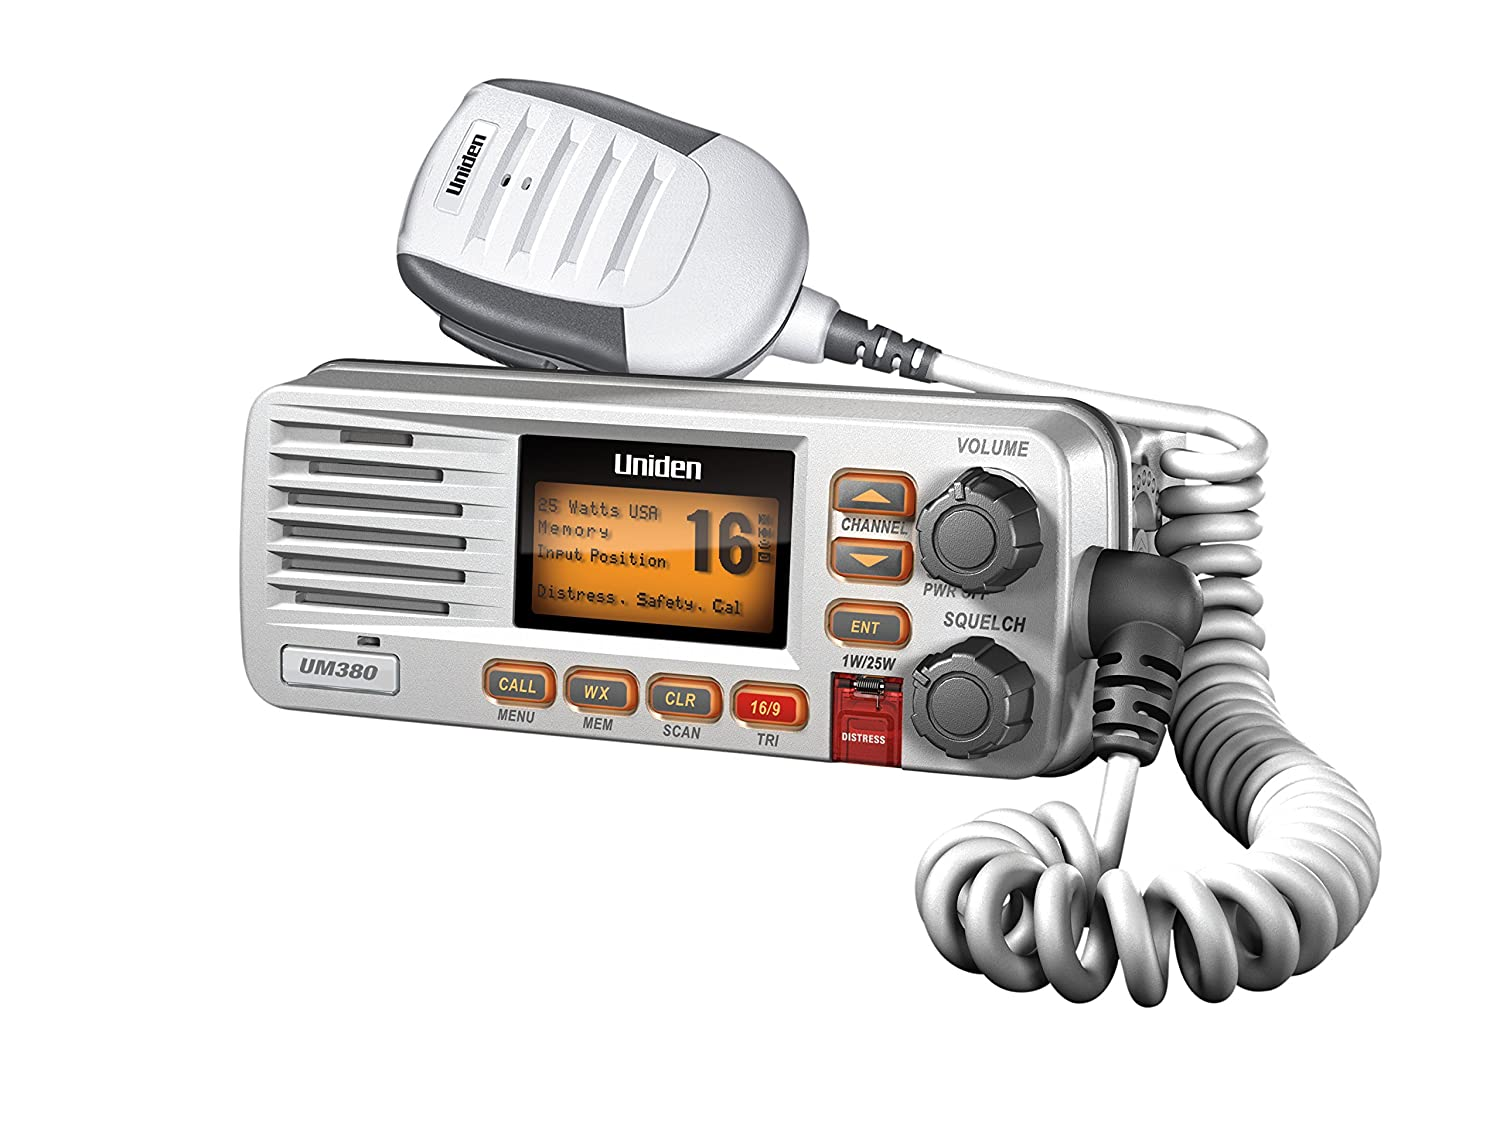 Uniden Class D Full Feature Fixed Mount VHF Marine Radio White UM380